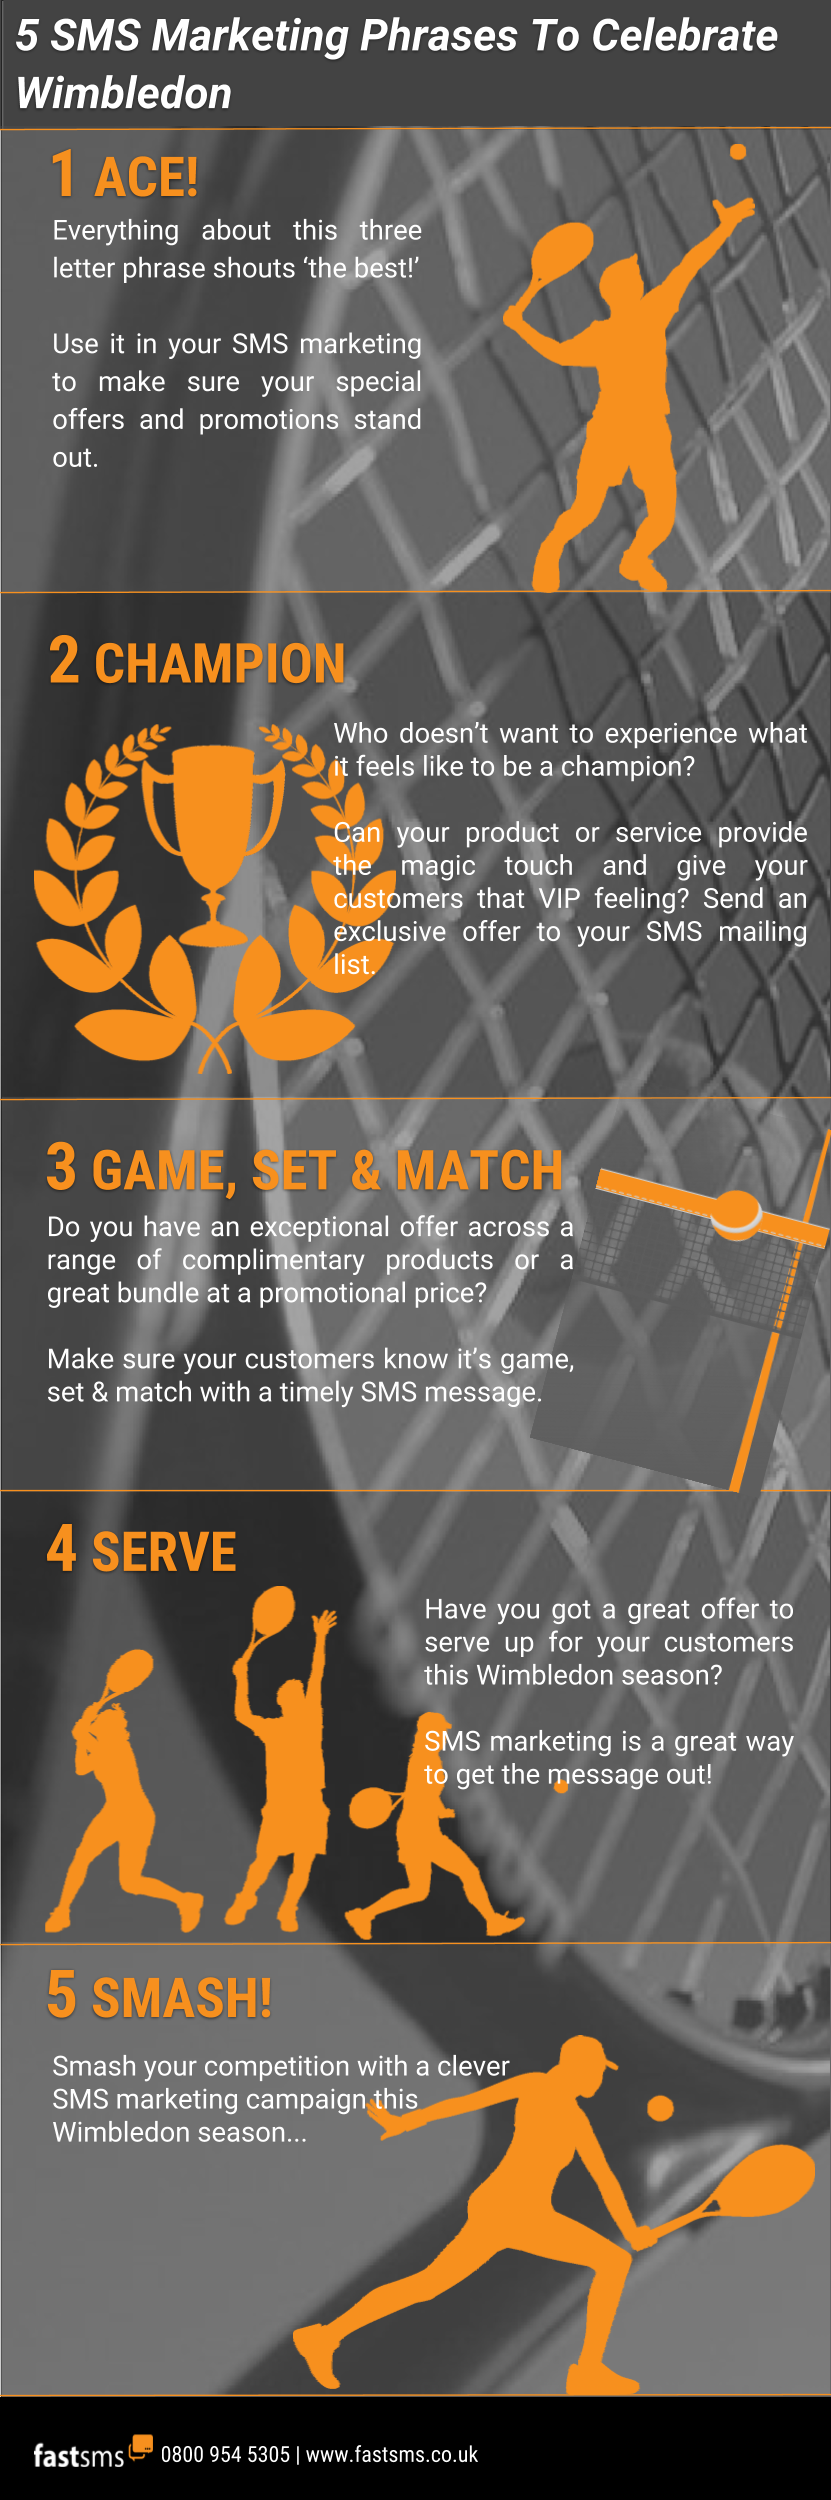 5 SMS Marketing Phrases to Celebrate Wimbeldon - Infographic | Fastsms